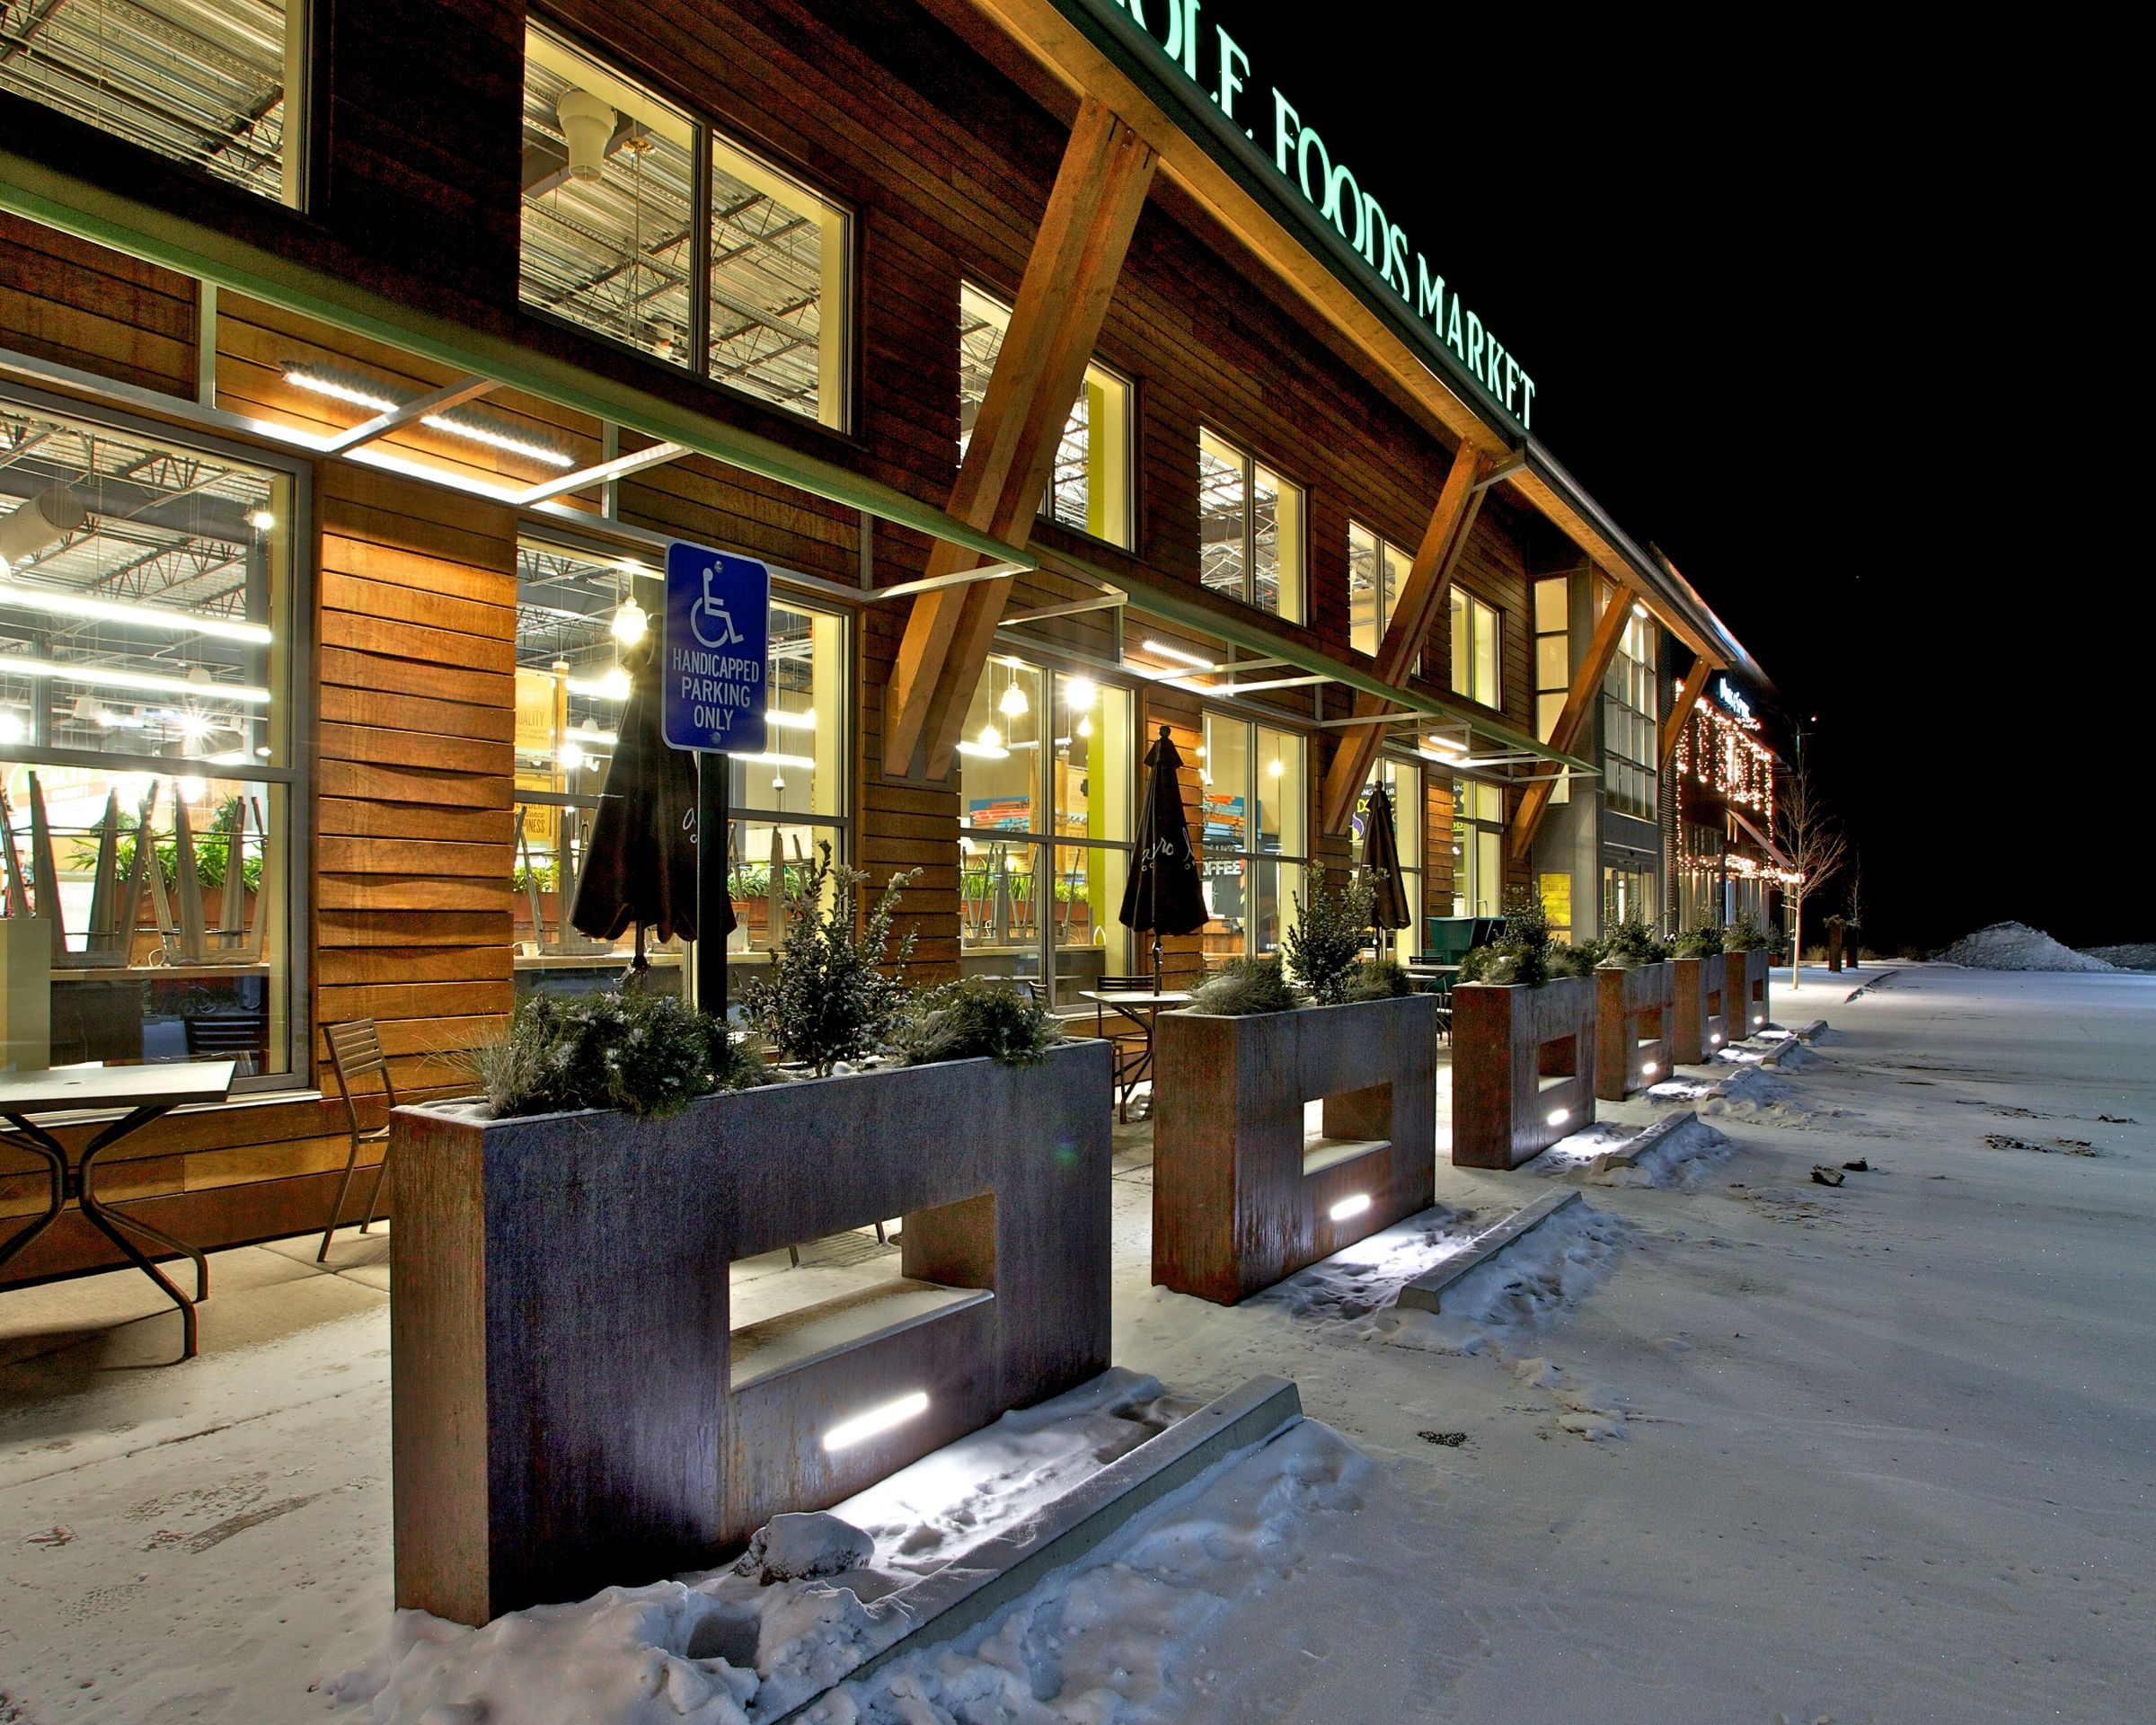 planter lighting. Metal Planters Used As A Parking Lot Barrier For Whole Foods Market Grocery Store Planter Lighting C